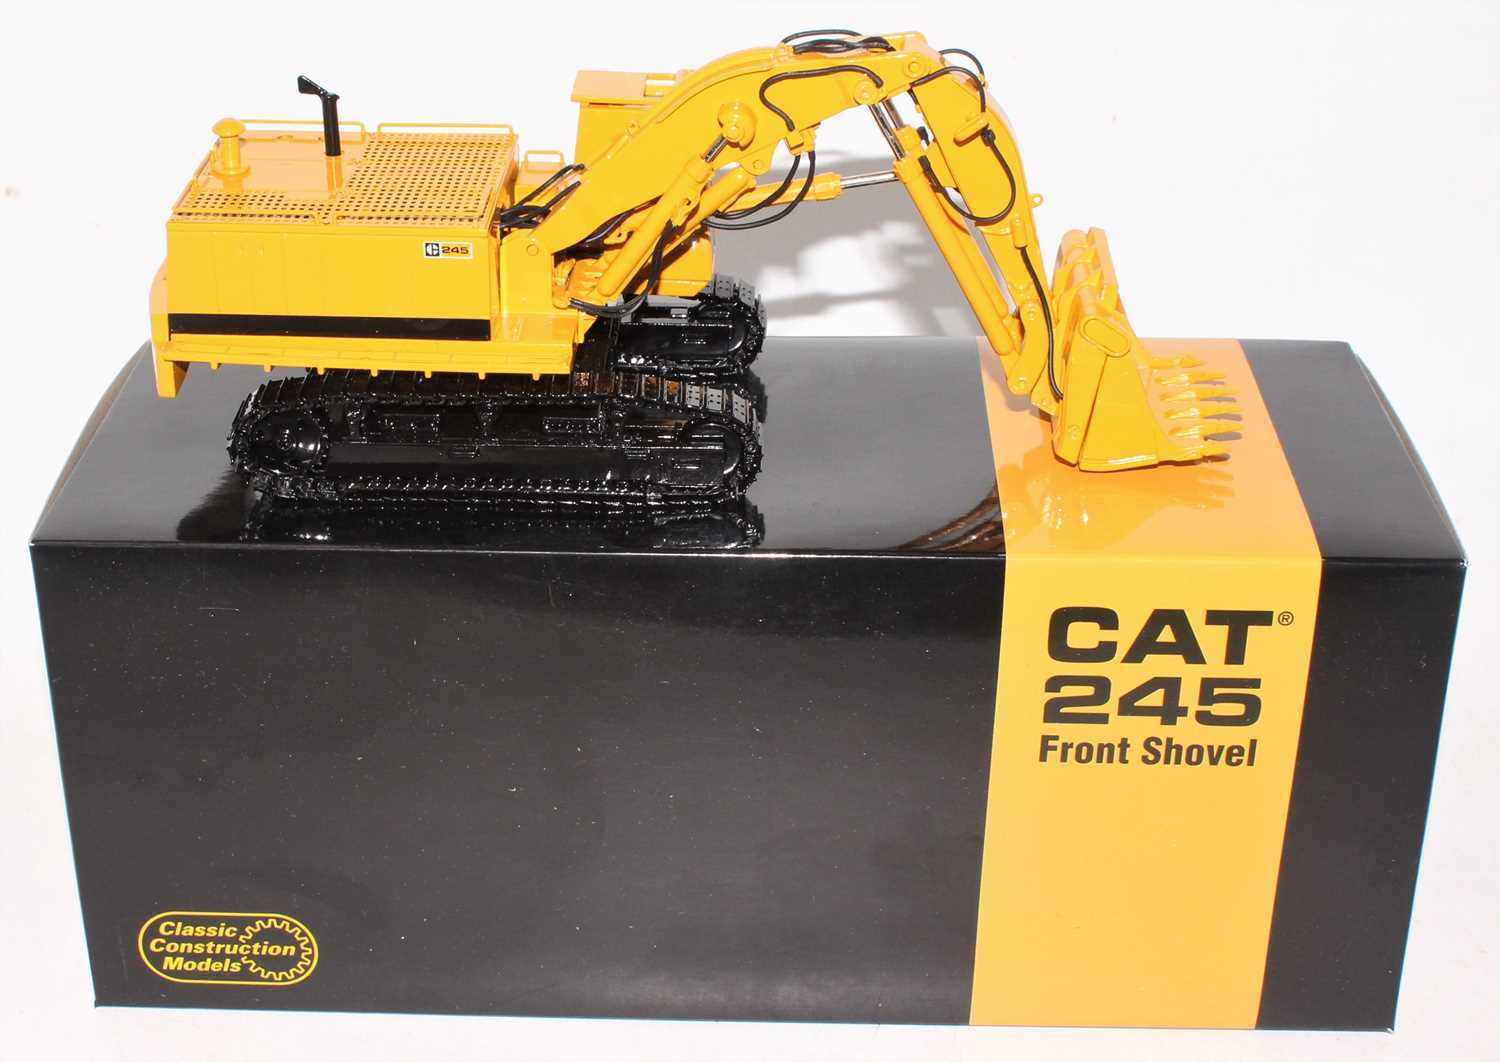 A Classic Construction Models (CCM) 1/48 scale precision diecast model of a Caterpillar 245 front